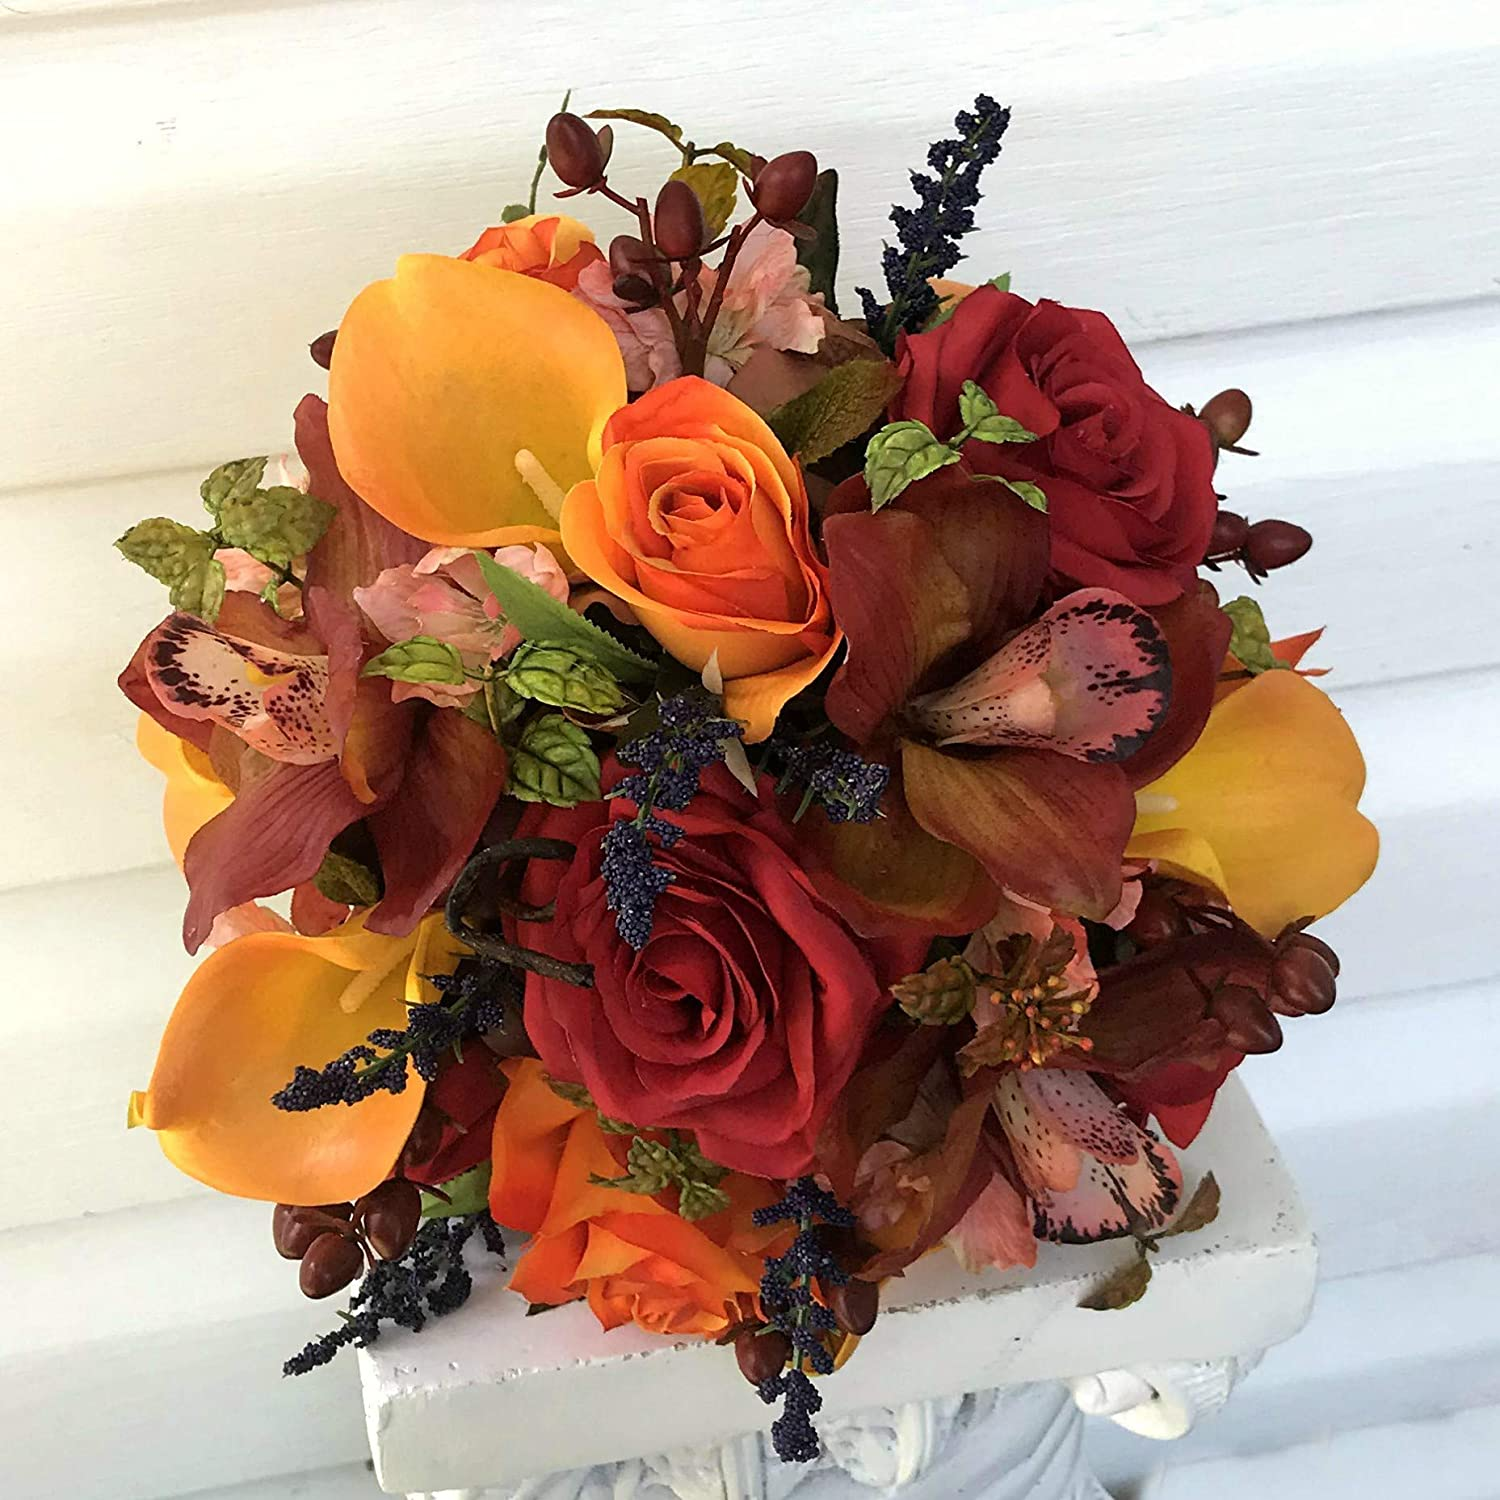 Fall Wedding Bouquets.Amazon Com Autumn Wedding Bouquet Orange Calla Lily Red Rose